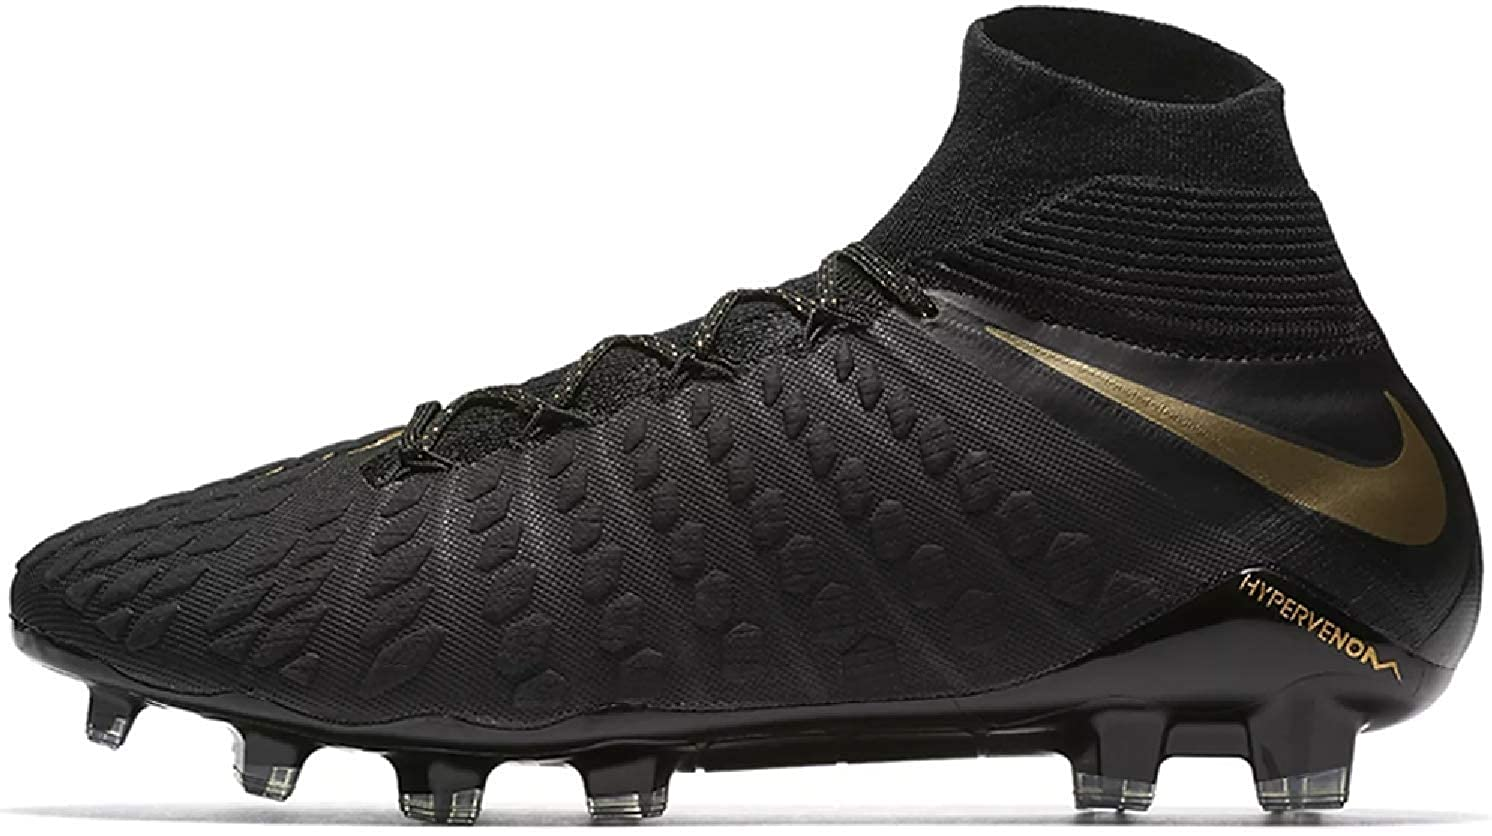 pretty nice 1c62c e6509 Nike Hypervenom Phantom III Elite FG Soccer Cleats